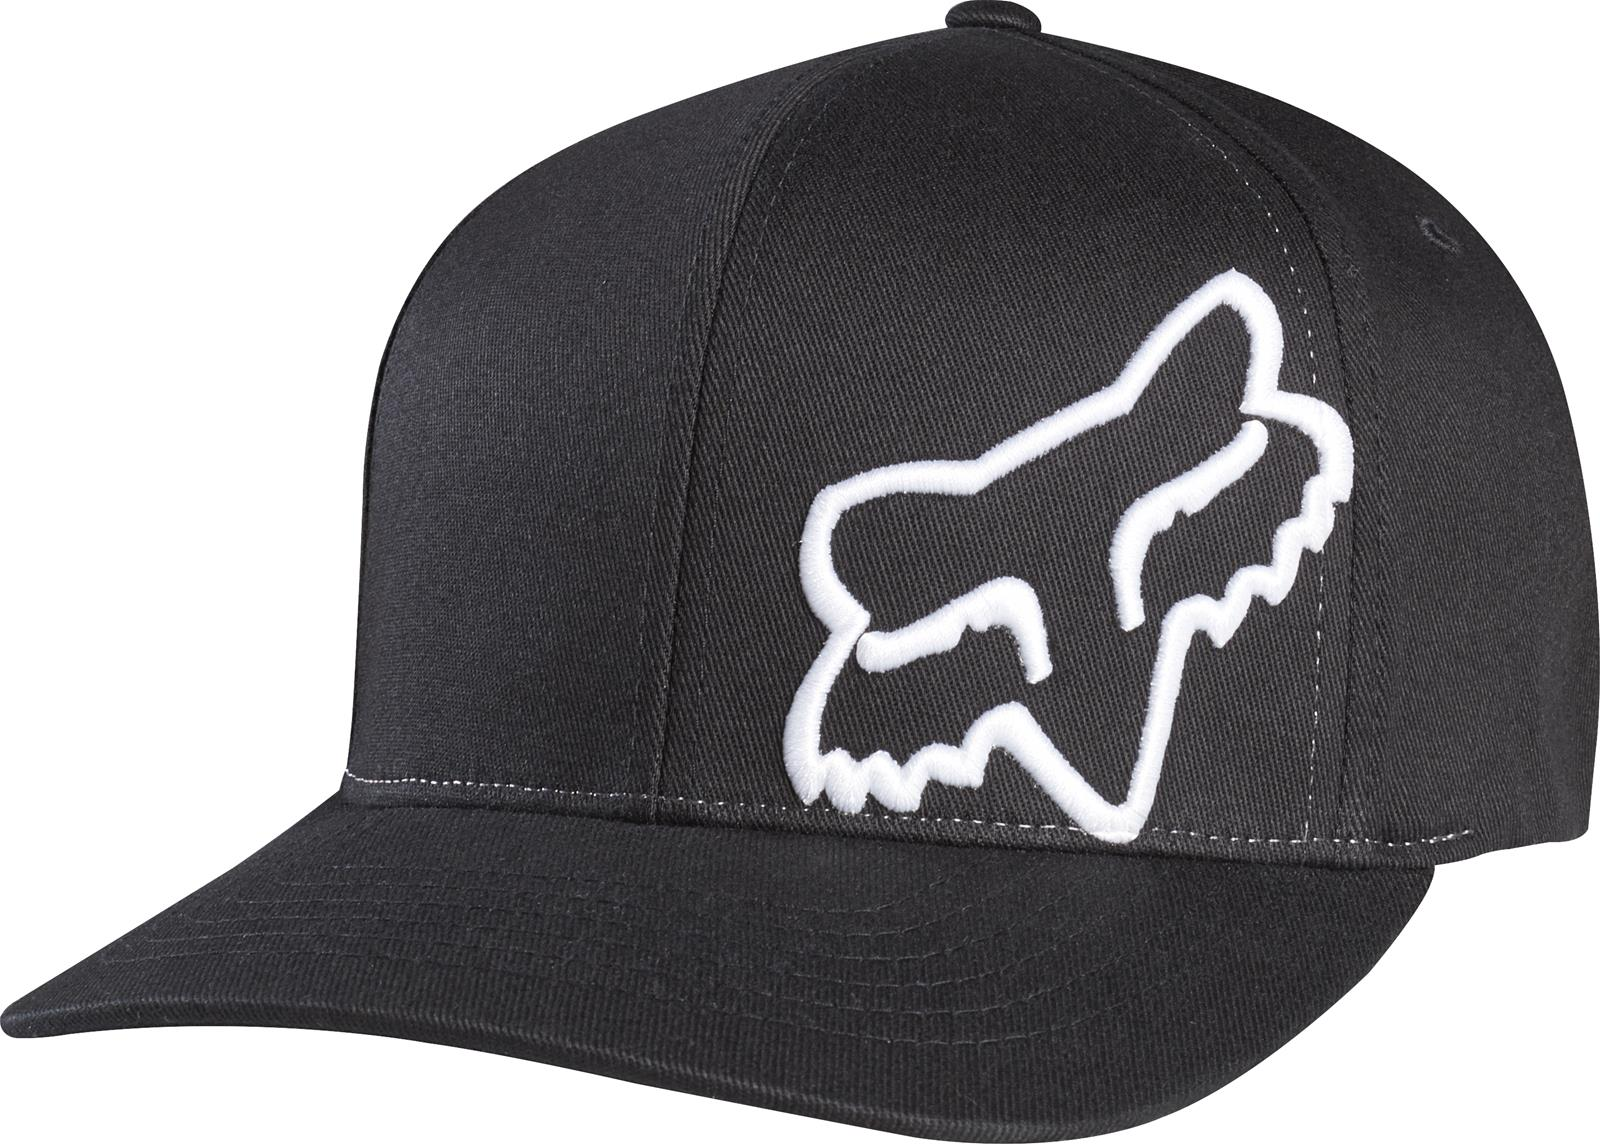 e458d92120f Fox Racing Flex 45 Flexfit Hats 58379-018-S M - Free Shipping on Orders  Over  99 at Summit Racing